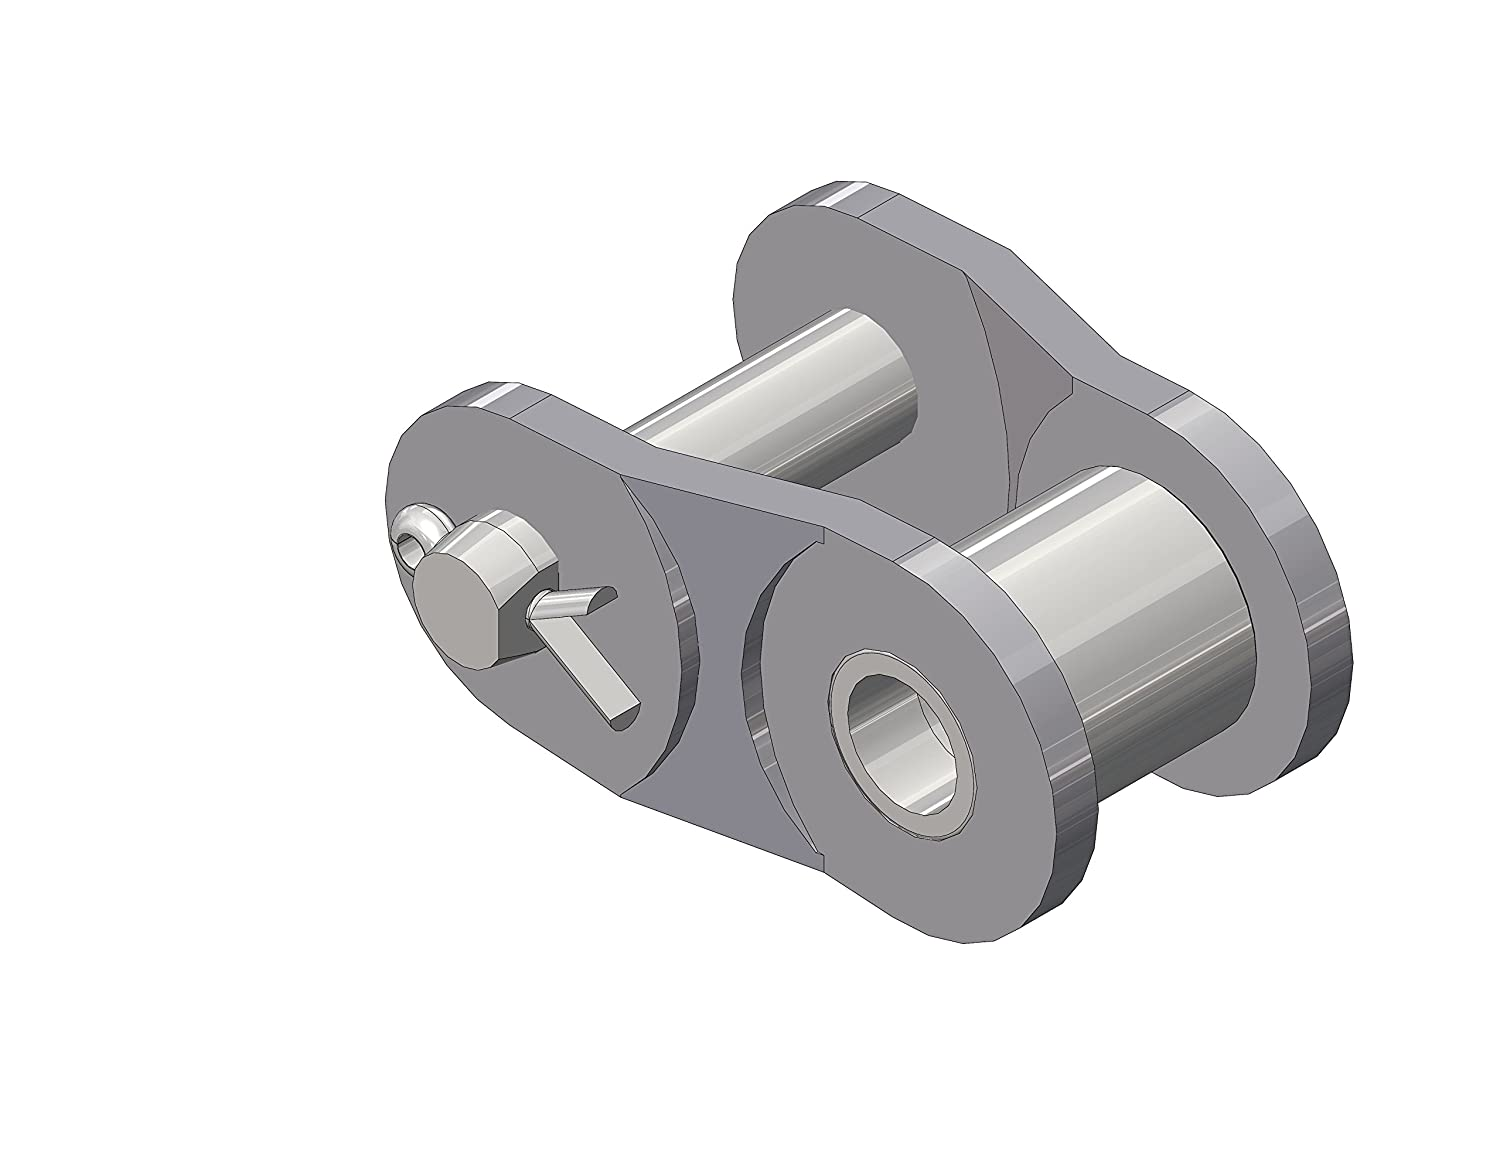 Senqcia Inspire Series 50HOL Heavy Series Offset Link, Single Strand, 1.20